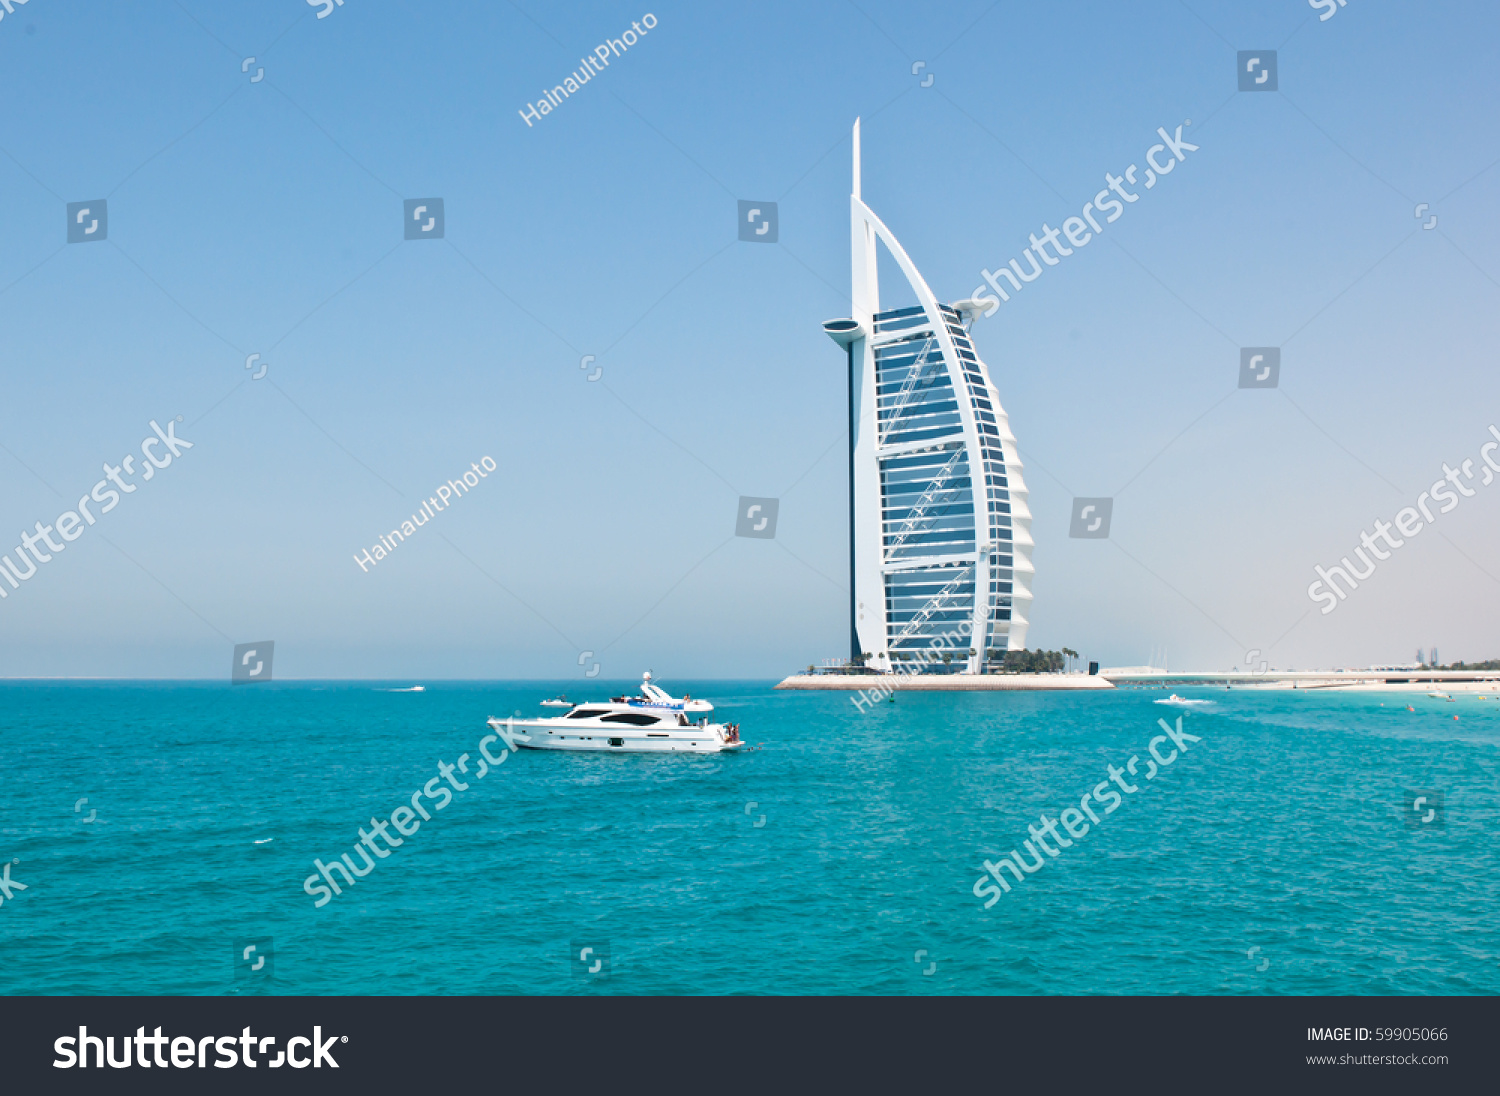 Dubai uae april 05 grand sail stock photo 59905066 for The sail hotel dubai